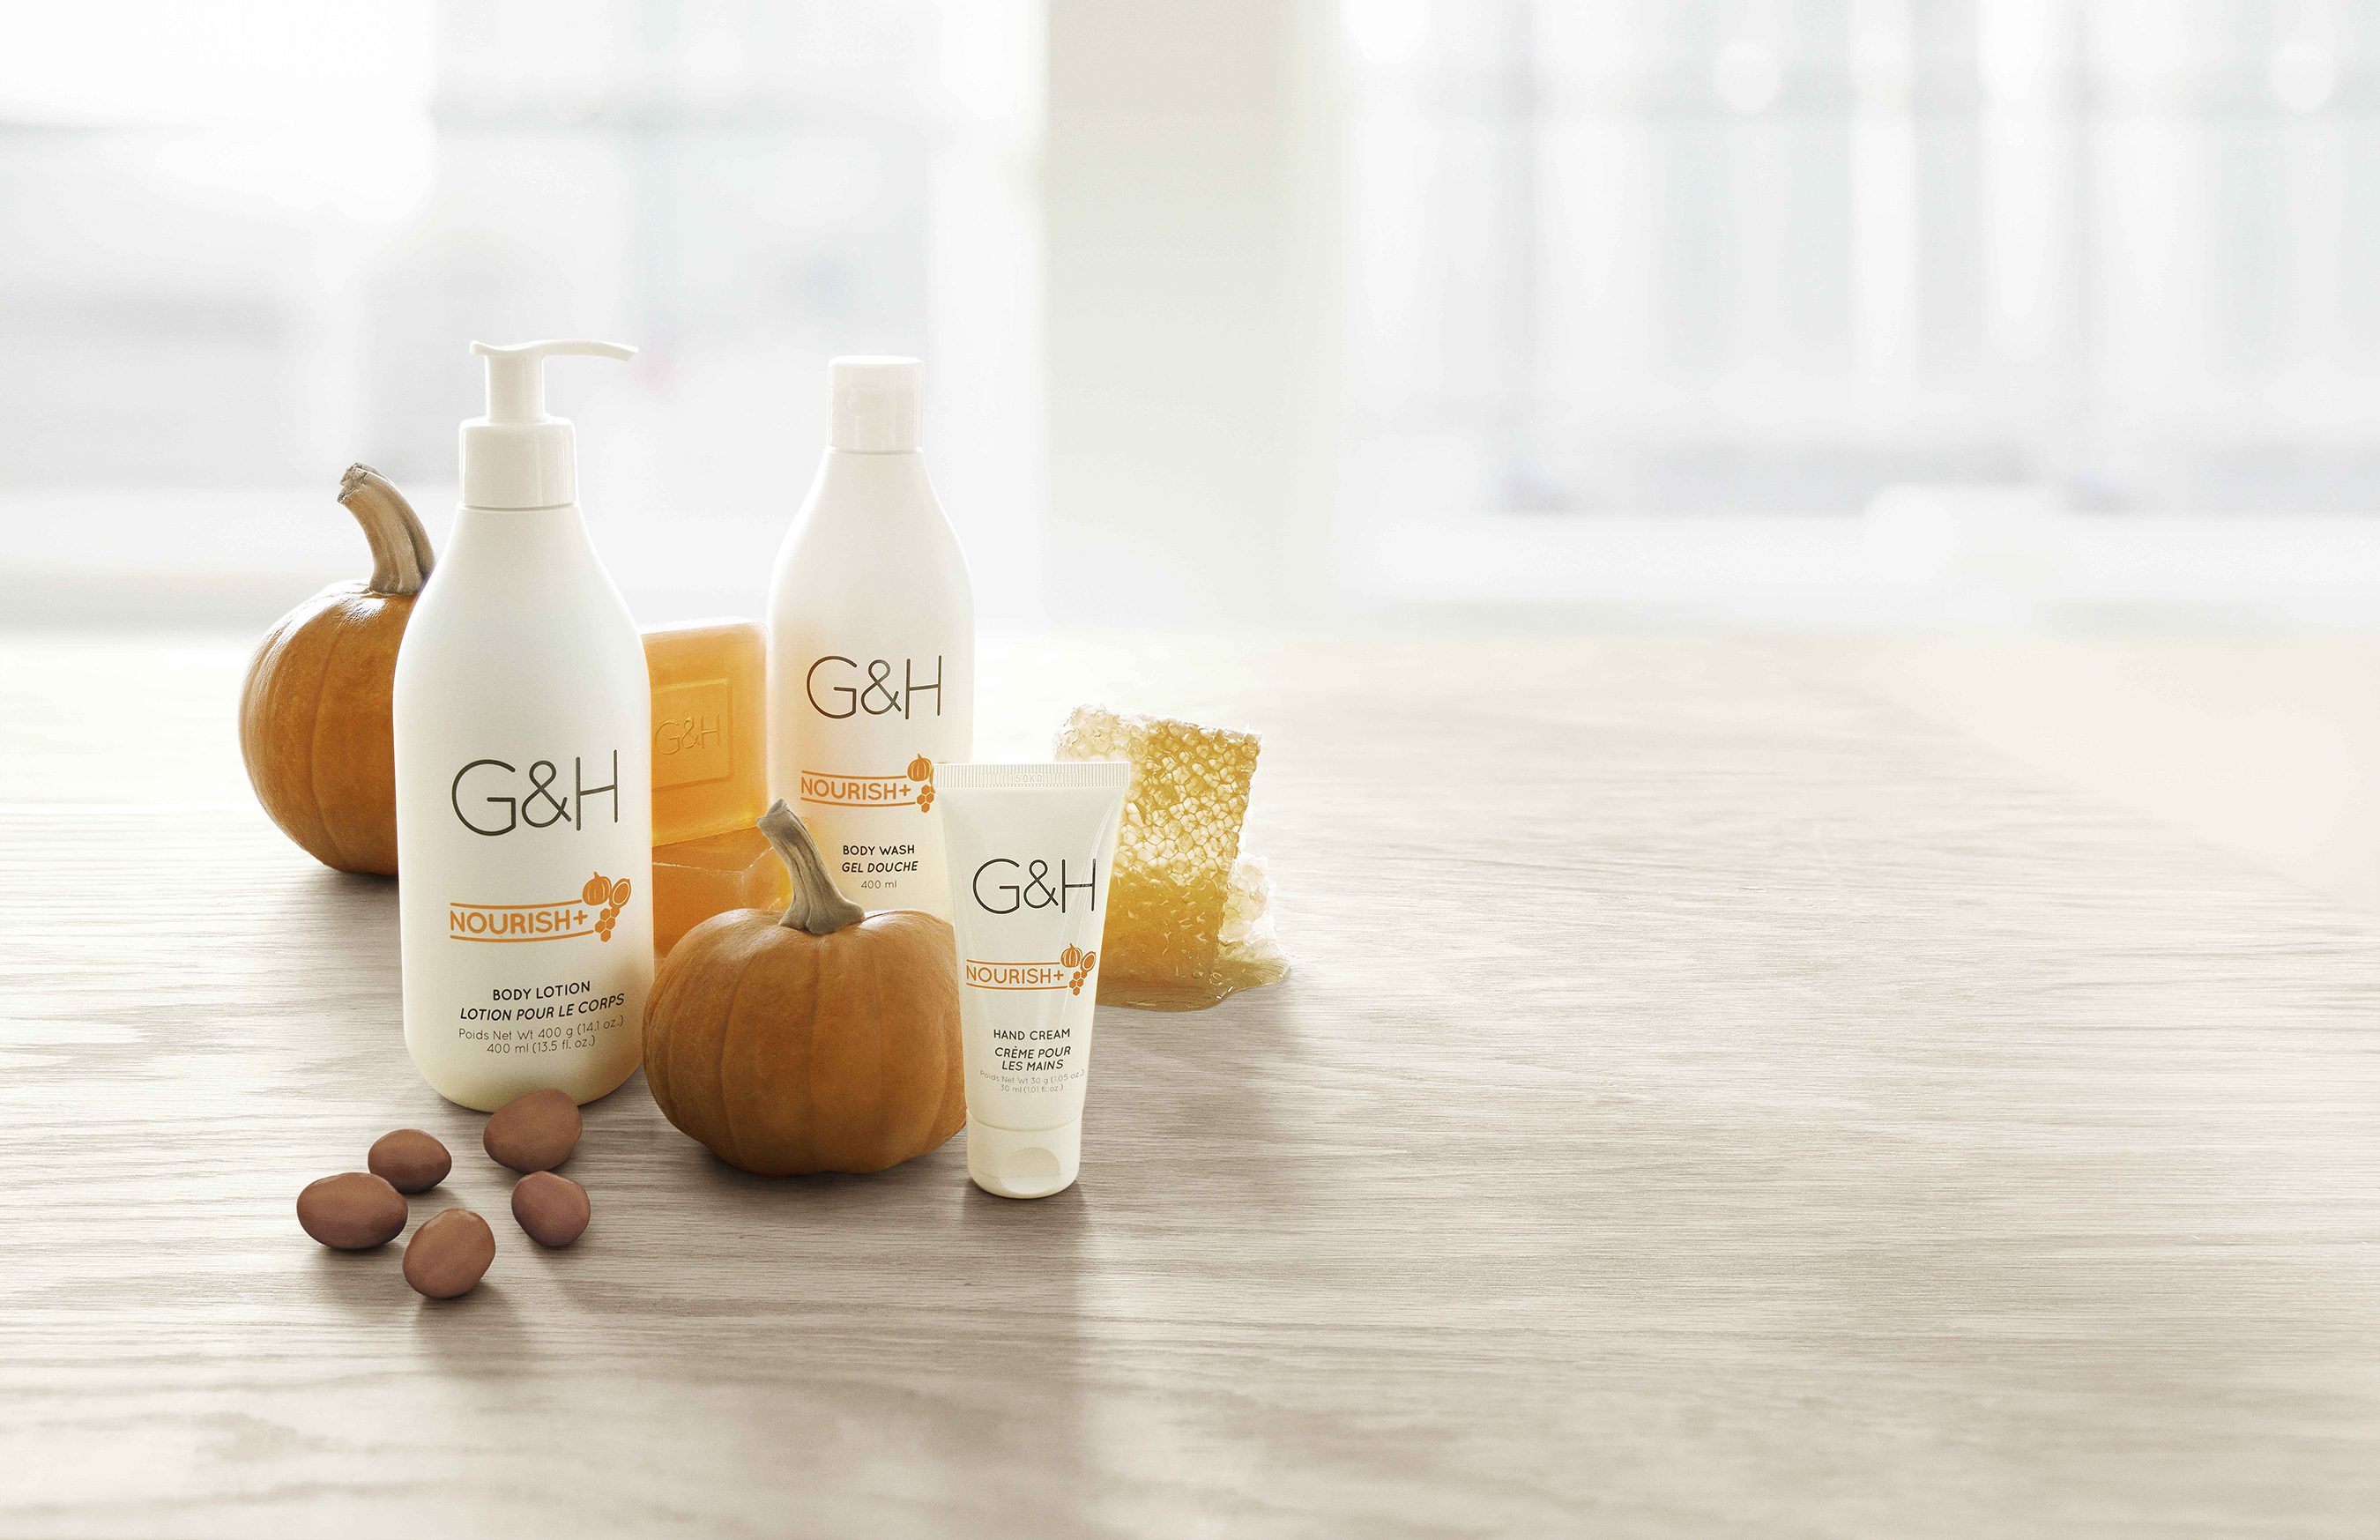 G&H Nourish+™ - Restorative body care helps nourish, comfort and maintain healthy looking skin with a rich, exclusive blend of naturally derived and botanical ingredients.